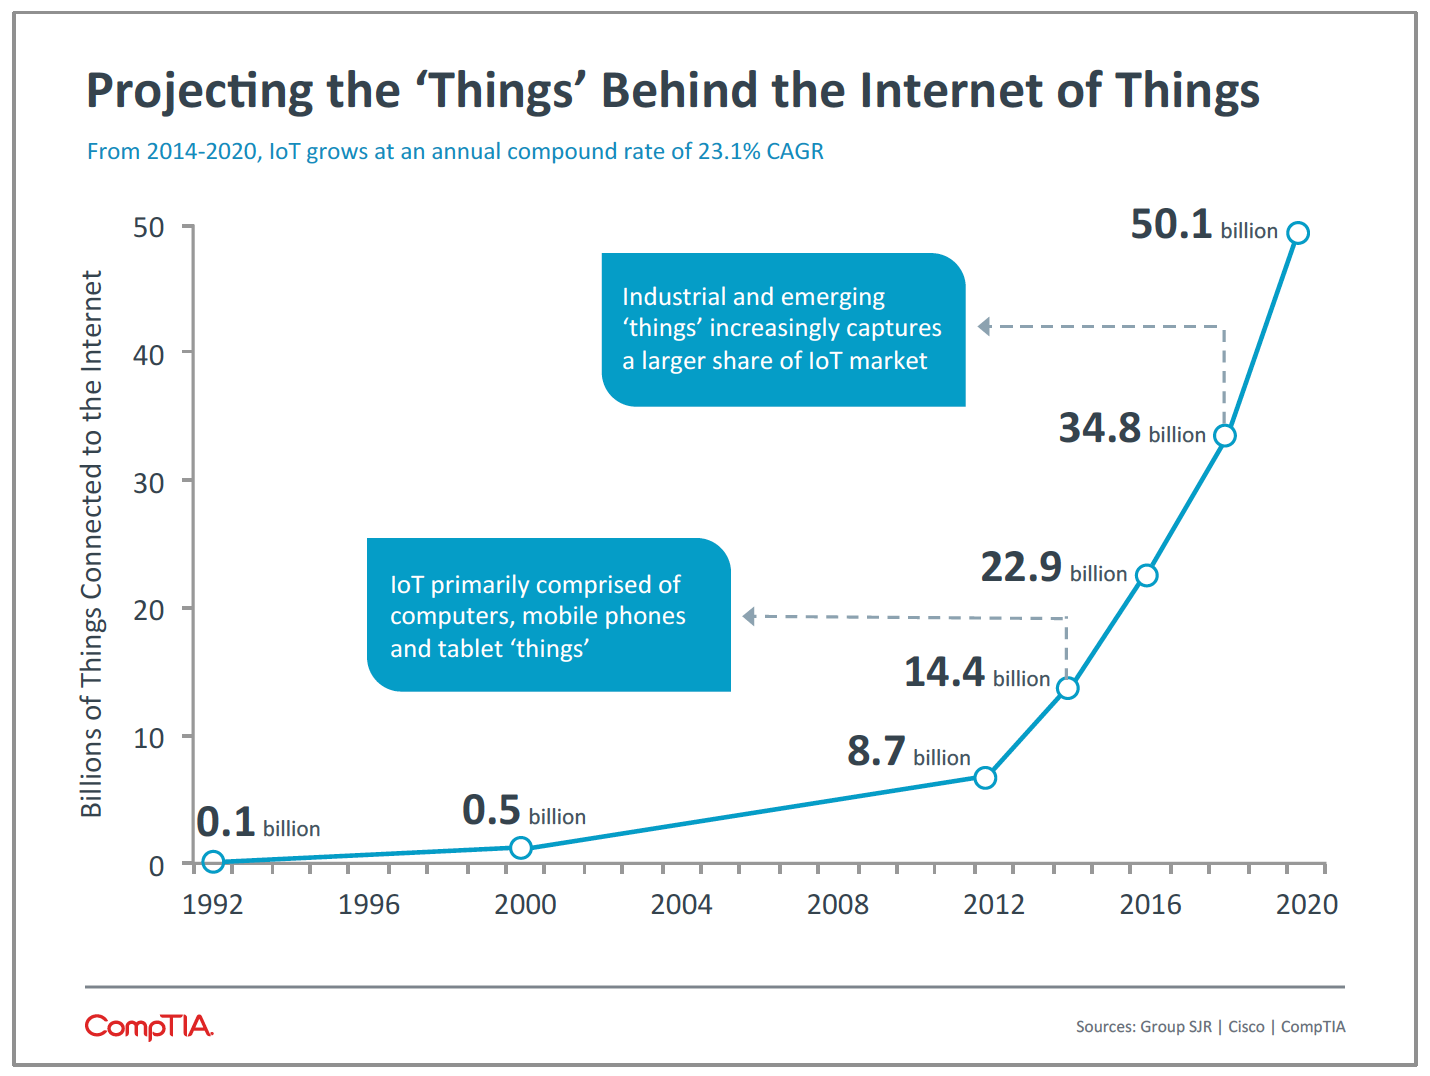 Projecting the 'Things' Behind the Internet of Things